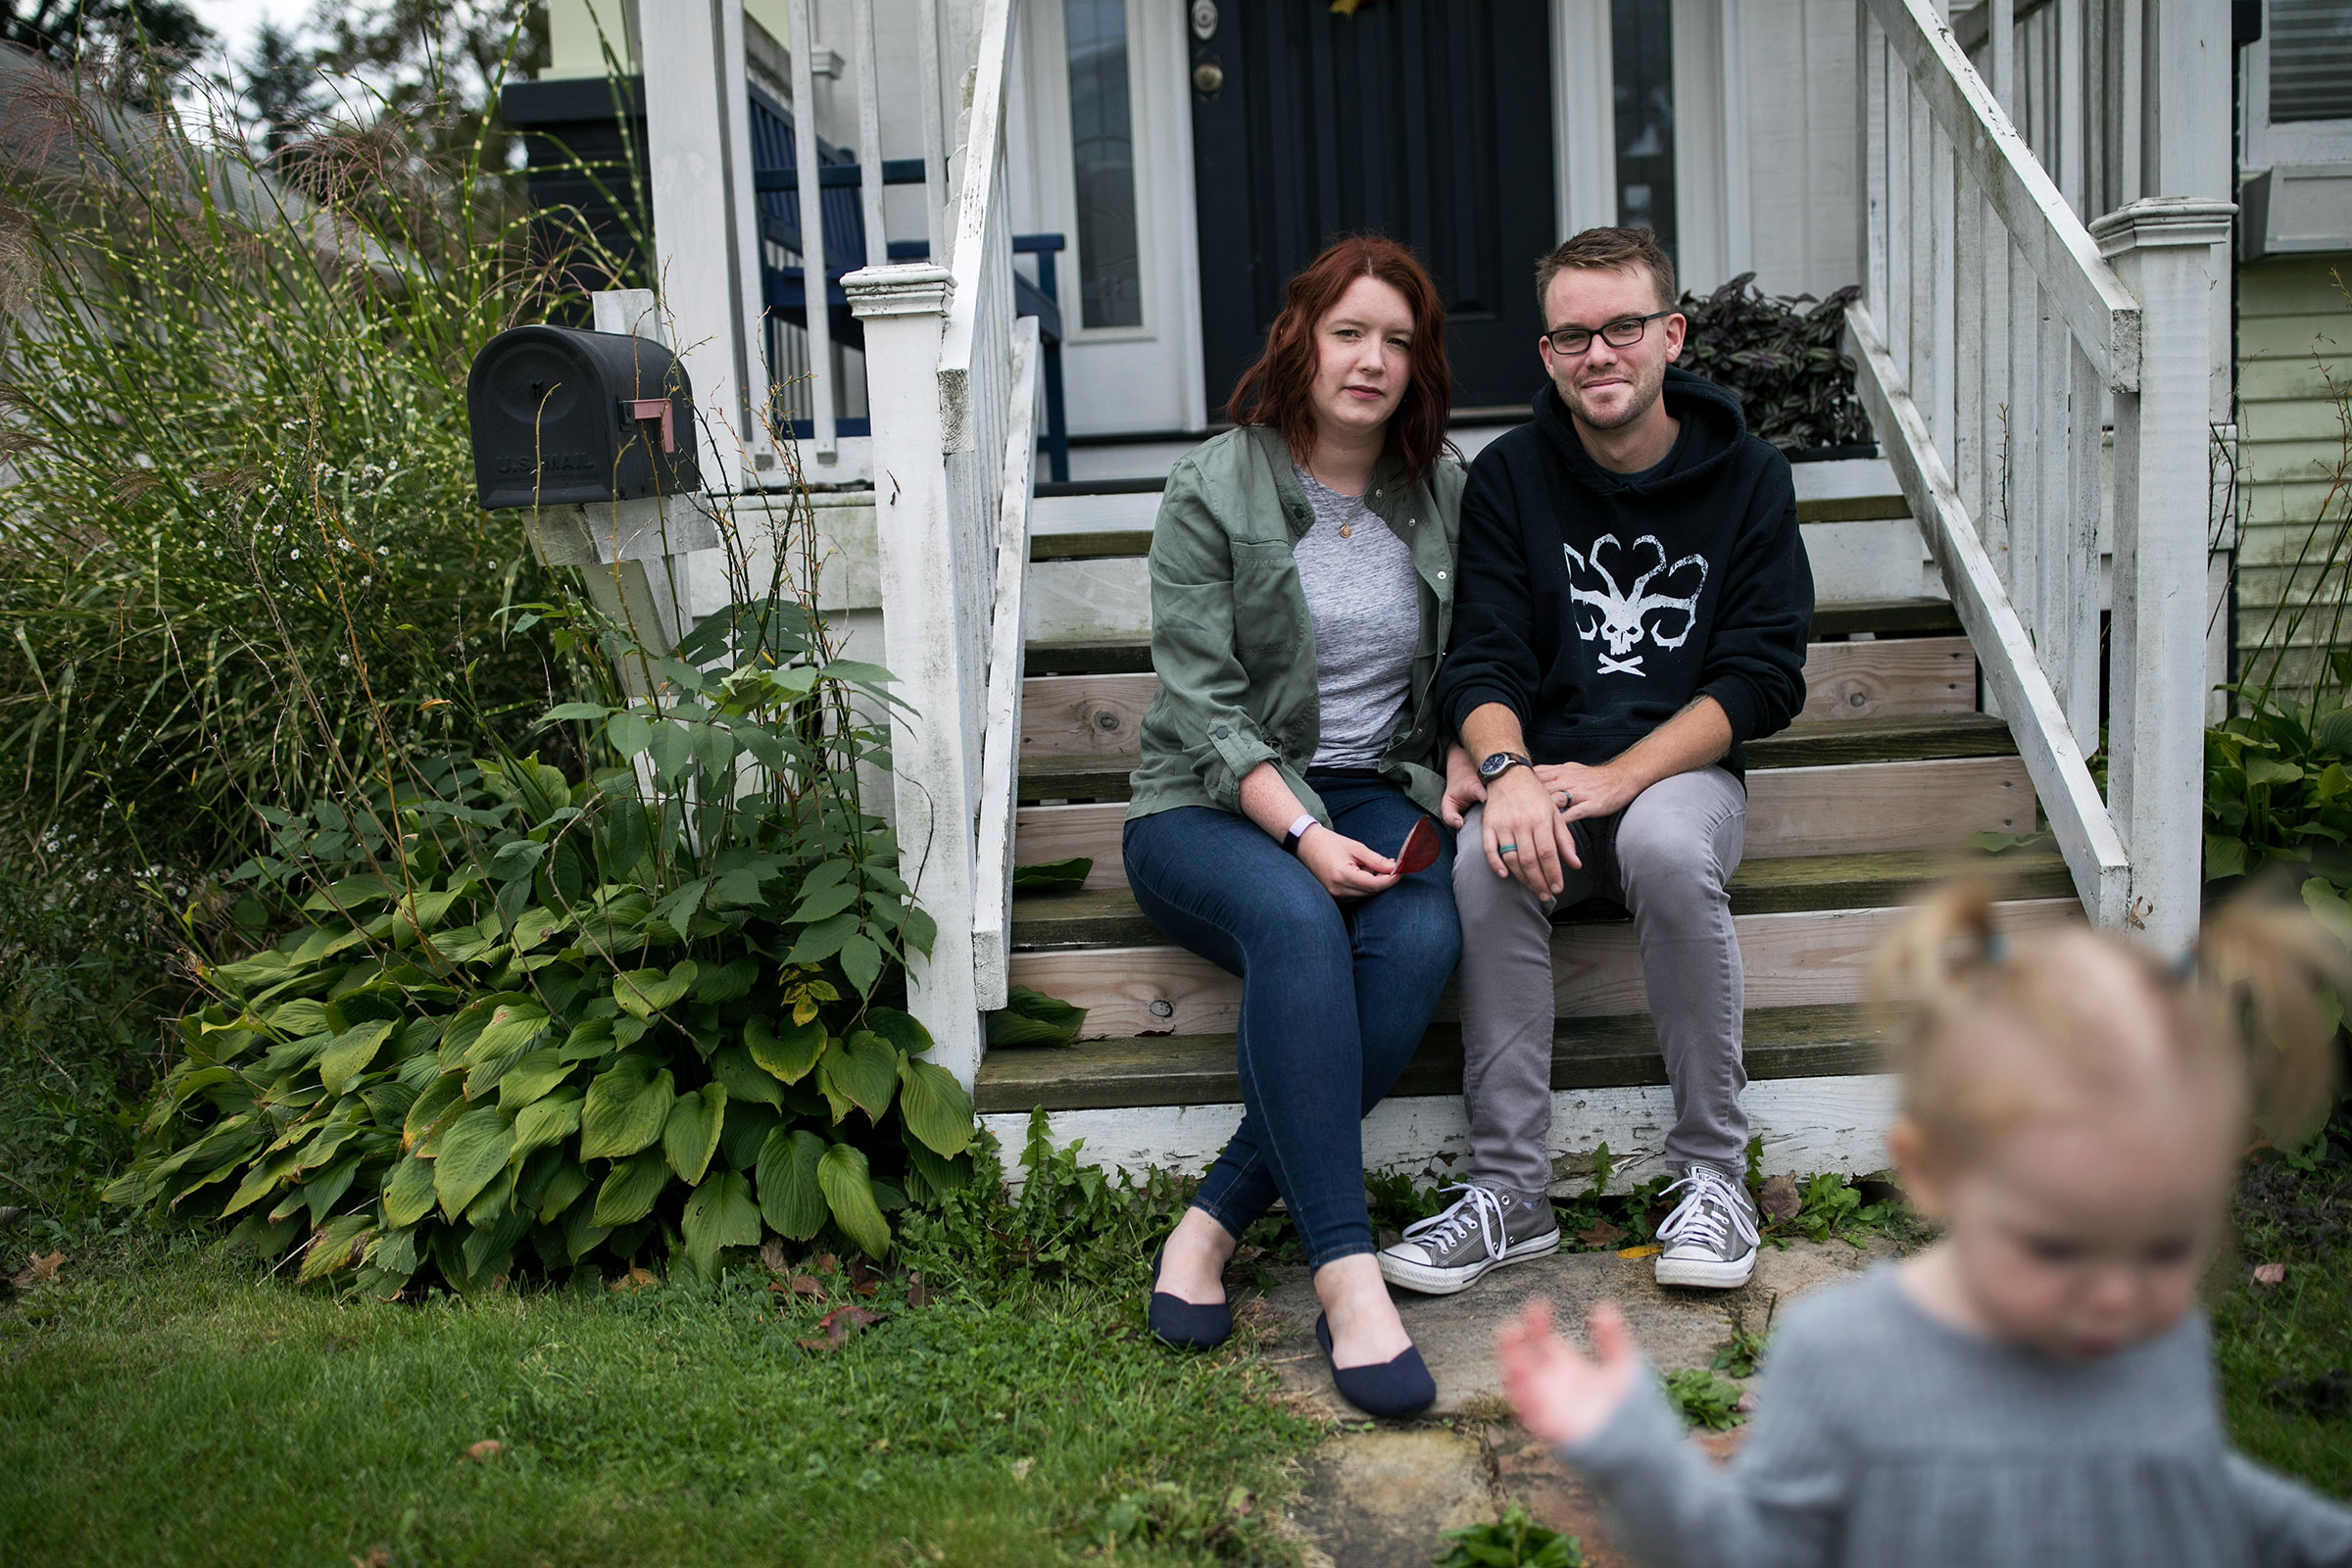 Shelby Parker sits outside of her home with her husband Ben and daughter Abby in Cuyahoga Falls, Ohio on Oct. 3. Parker planned to get pregnant this year but is contemplating not trying for a second child at all now due to the coronavirus pandemic.